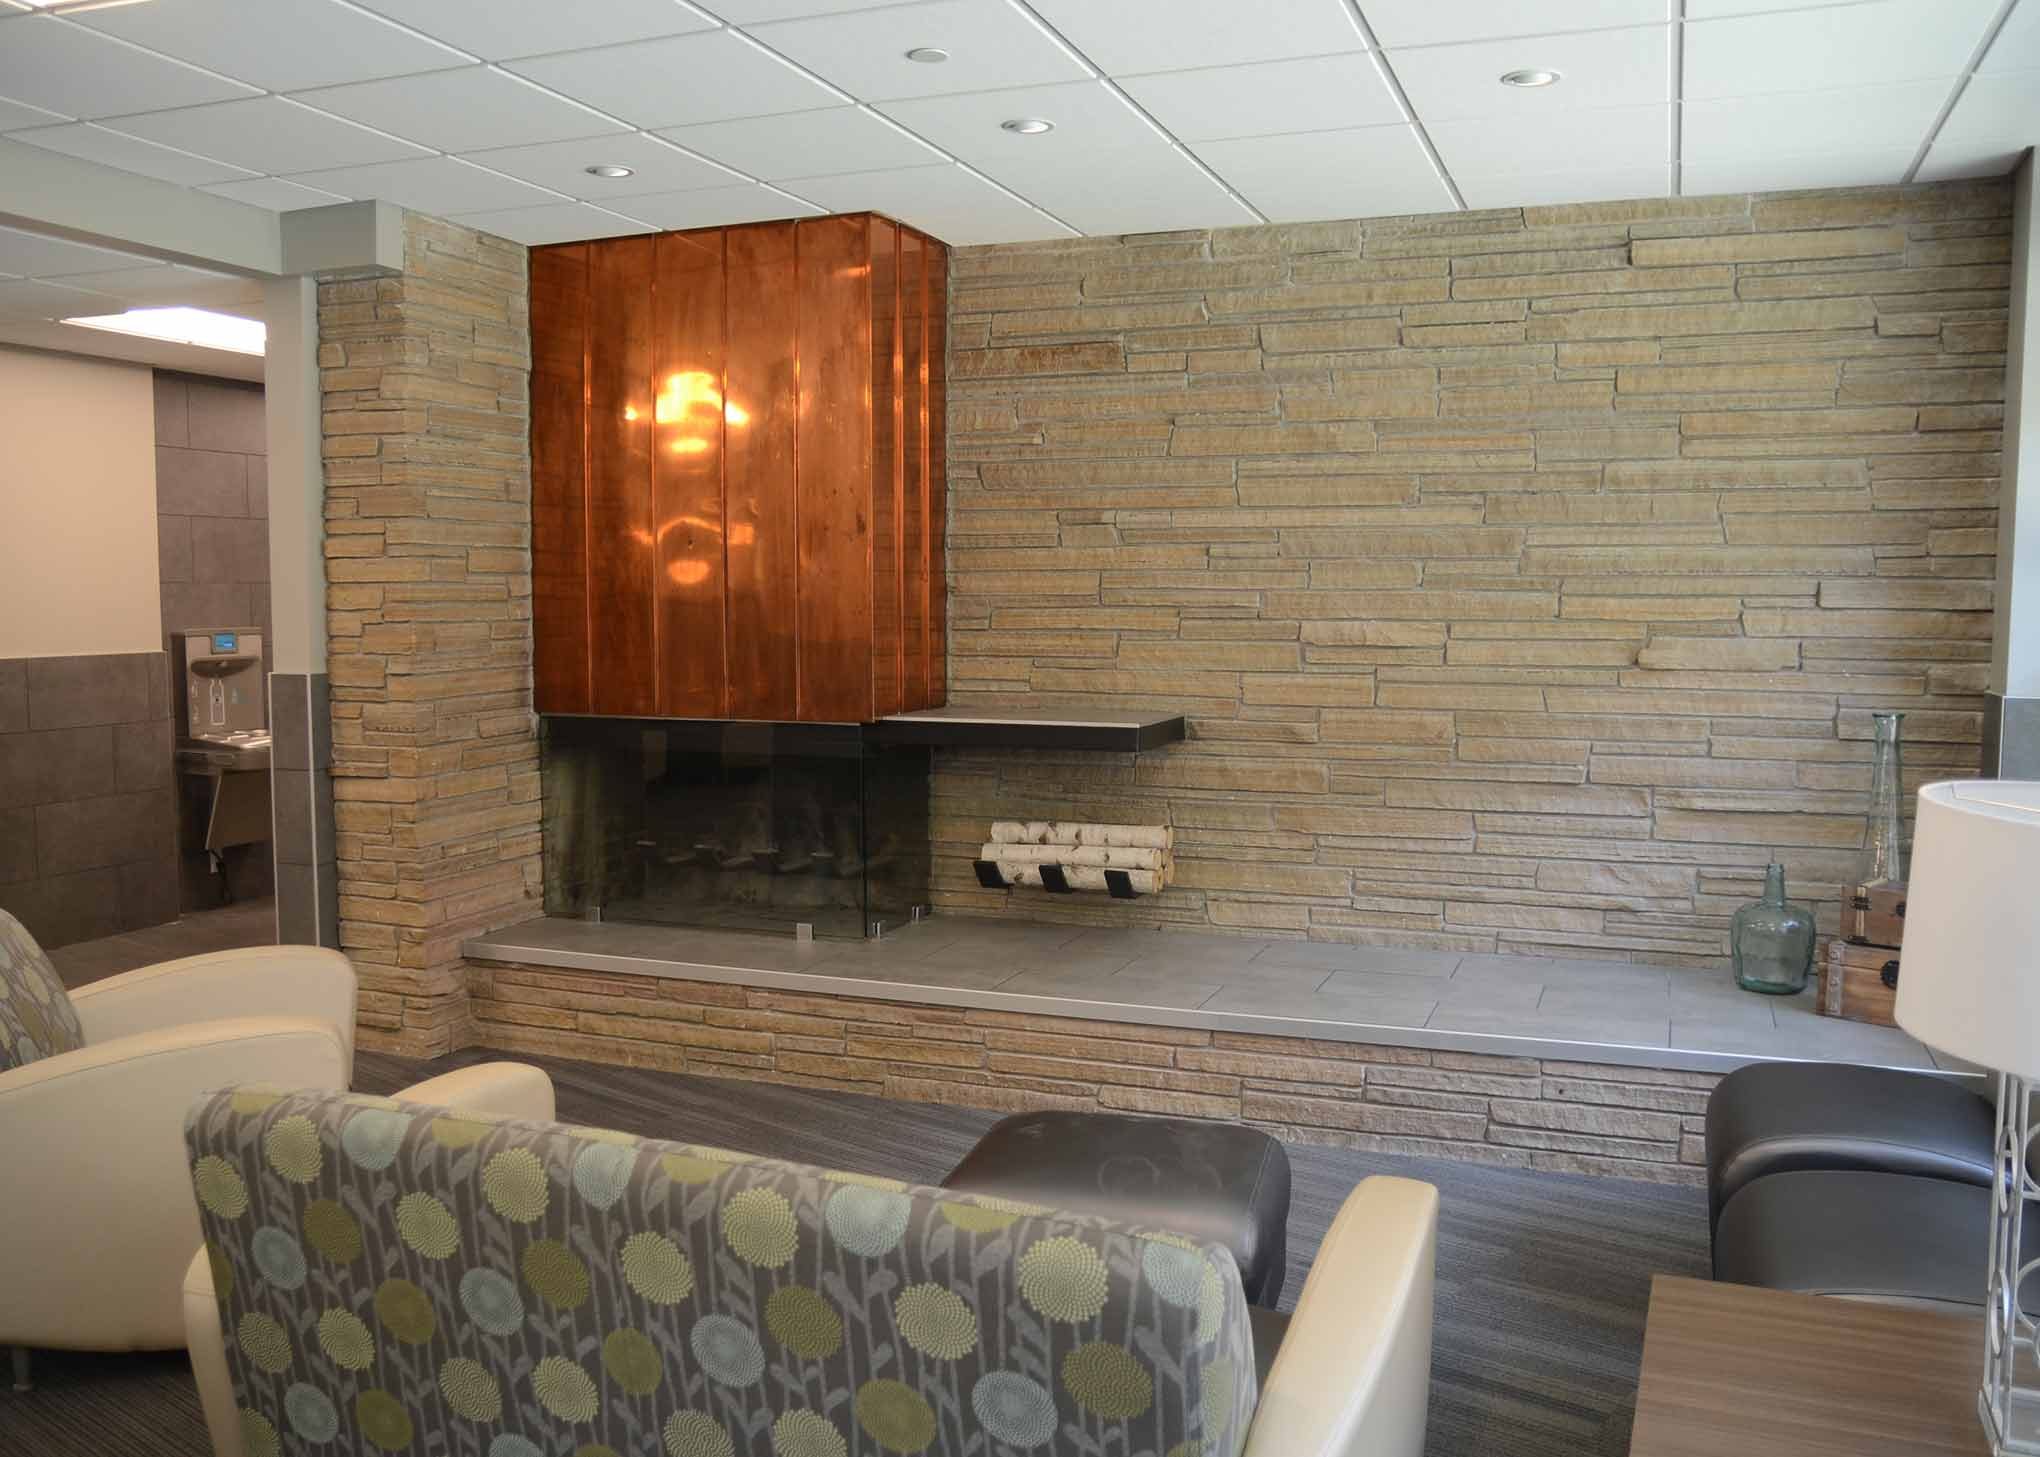 A part of the Rees Hall lobby that includes a fireplace and comfortable seating